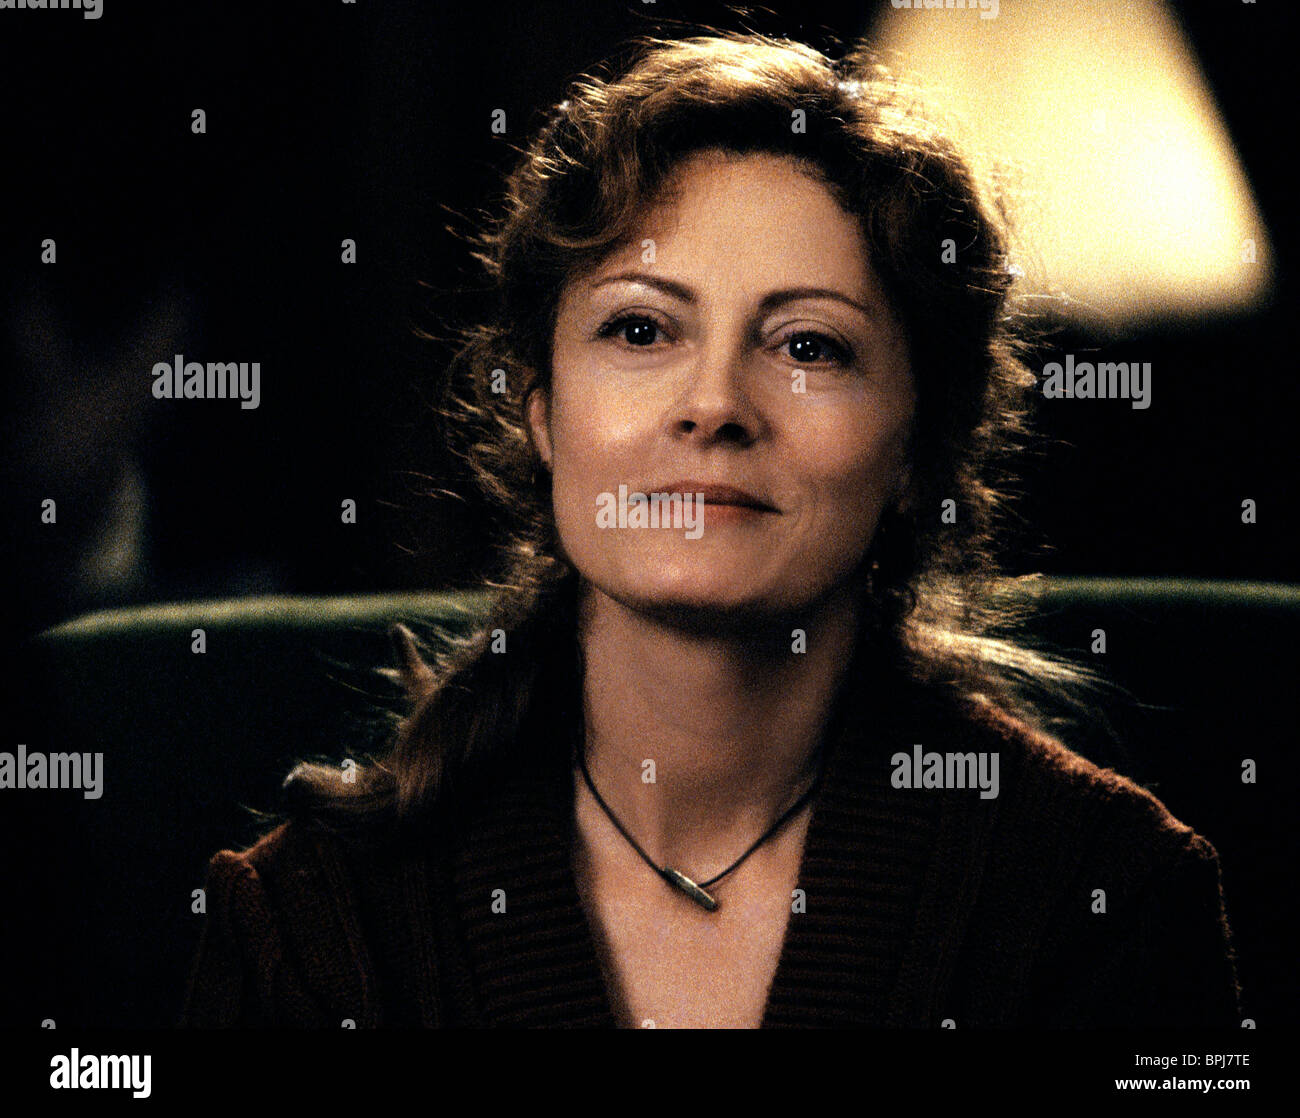 d0b0cac4d0 SUSAN SARANDON MOONLIGHT MILE (2002 Stock Photo: 31134110 - Alamy